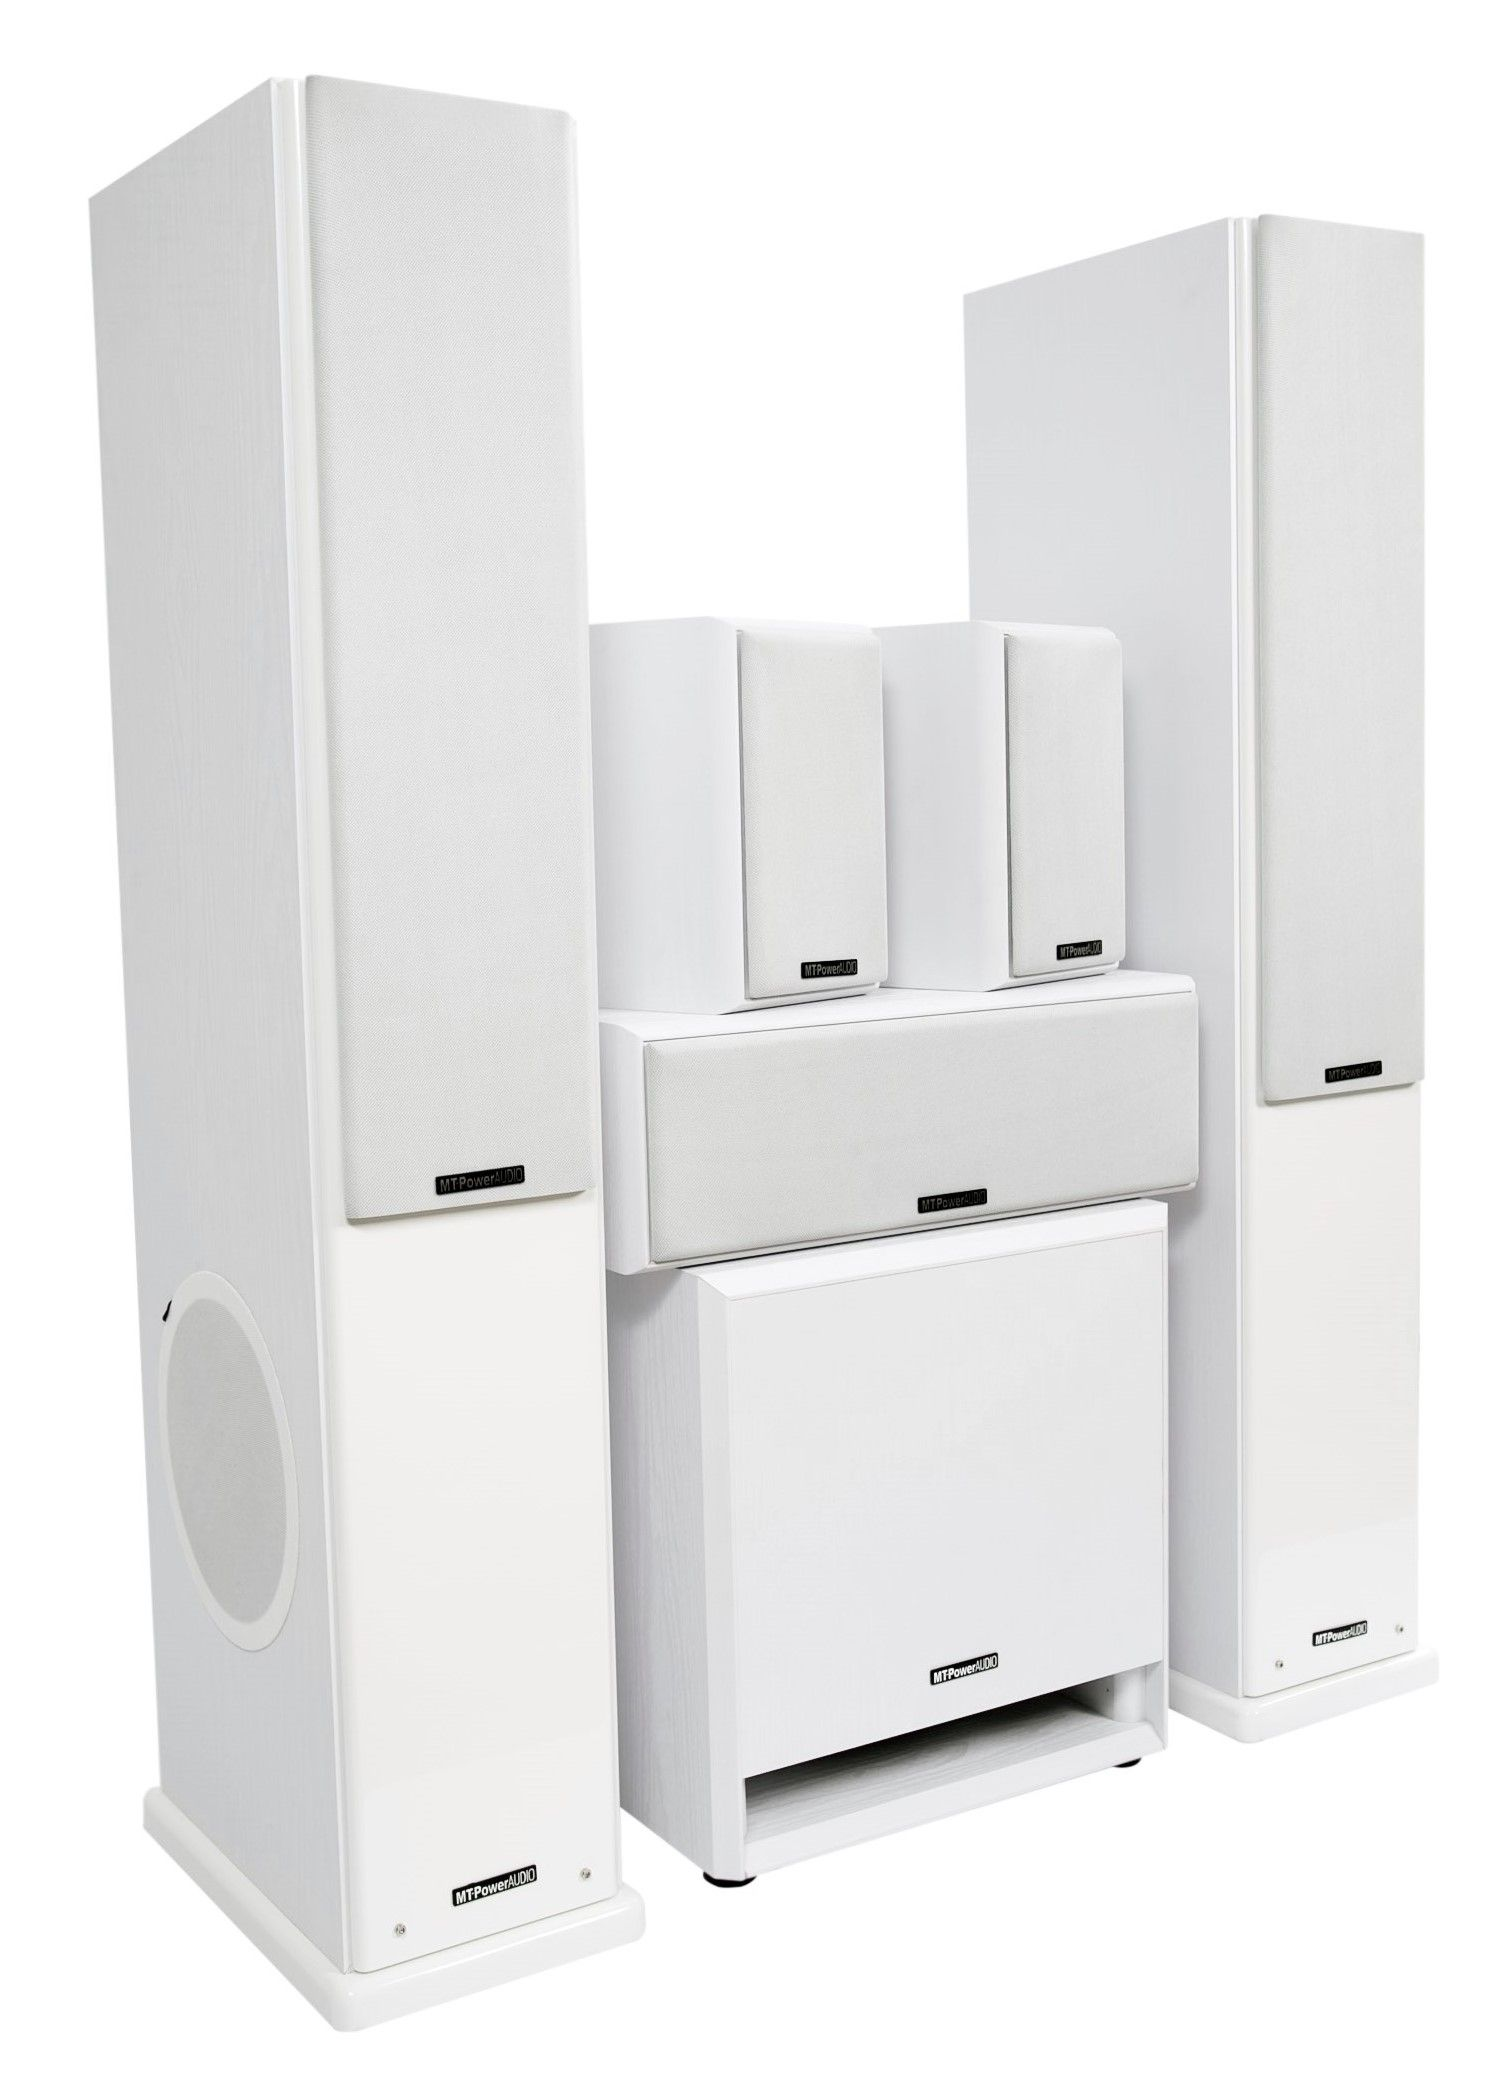 Комплект акустики MT-Power Elegance-2 white set 5.1 (white grills)